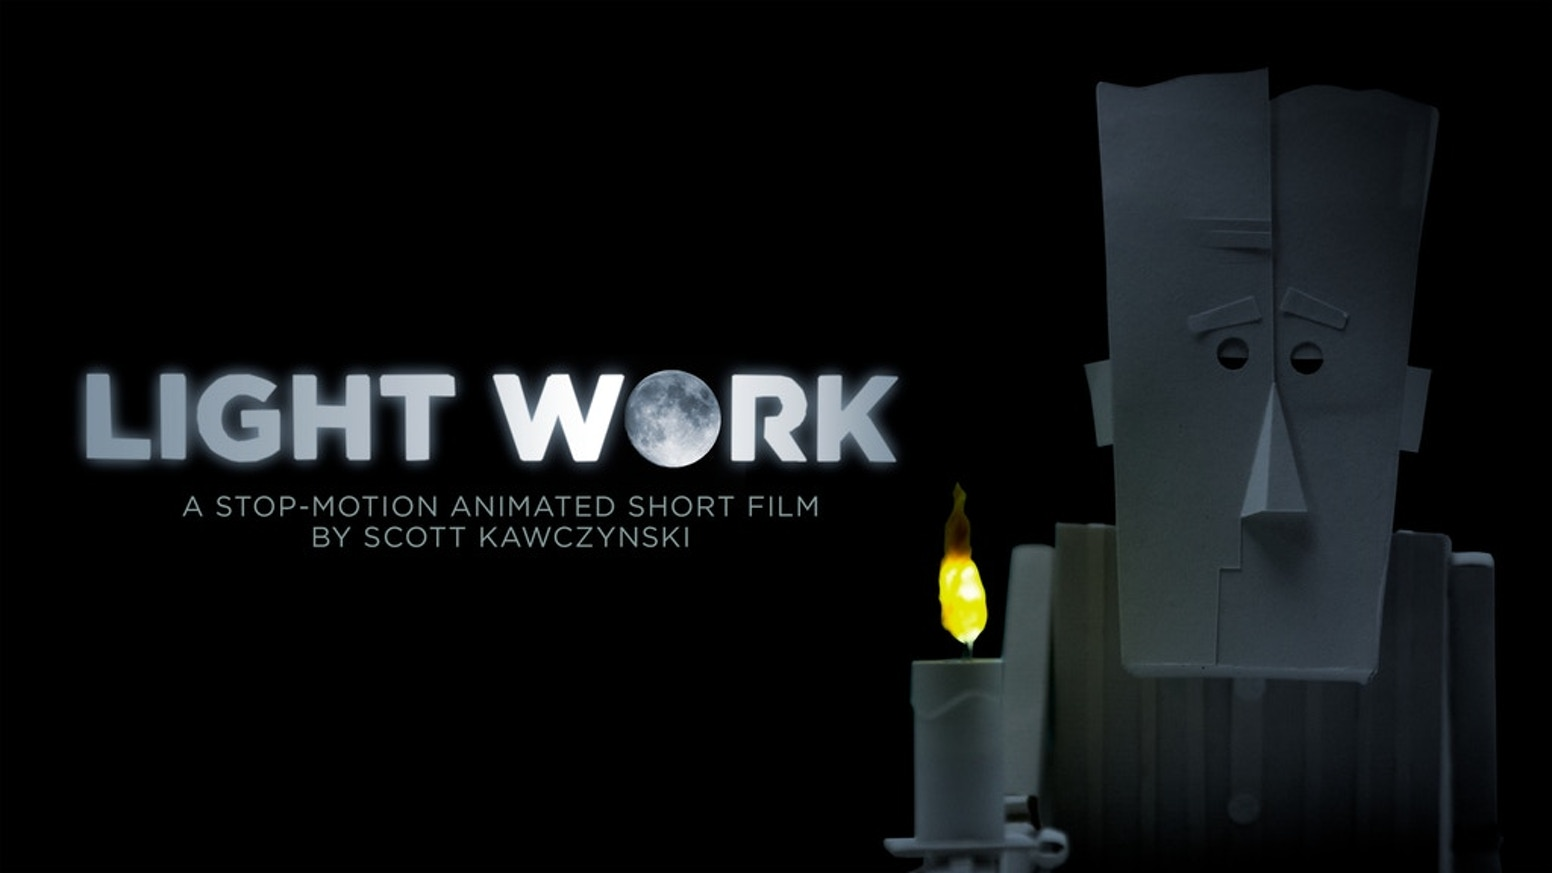 Light Work is a stop-motion animated short film about a lonely old man who is entrusted with a thankless Sisyphean task.